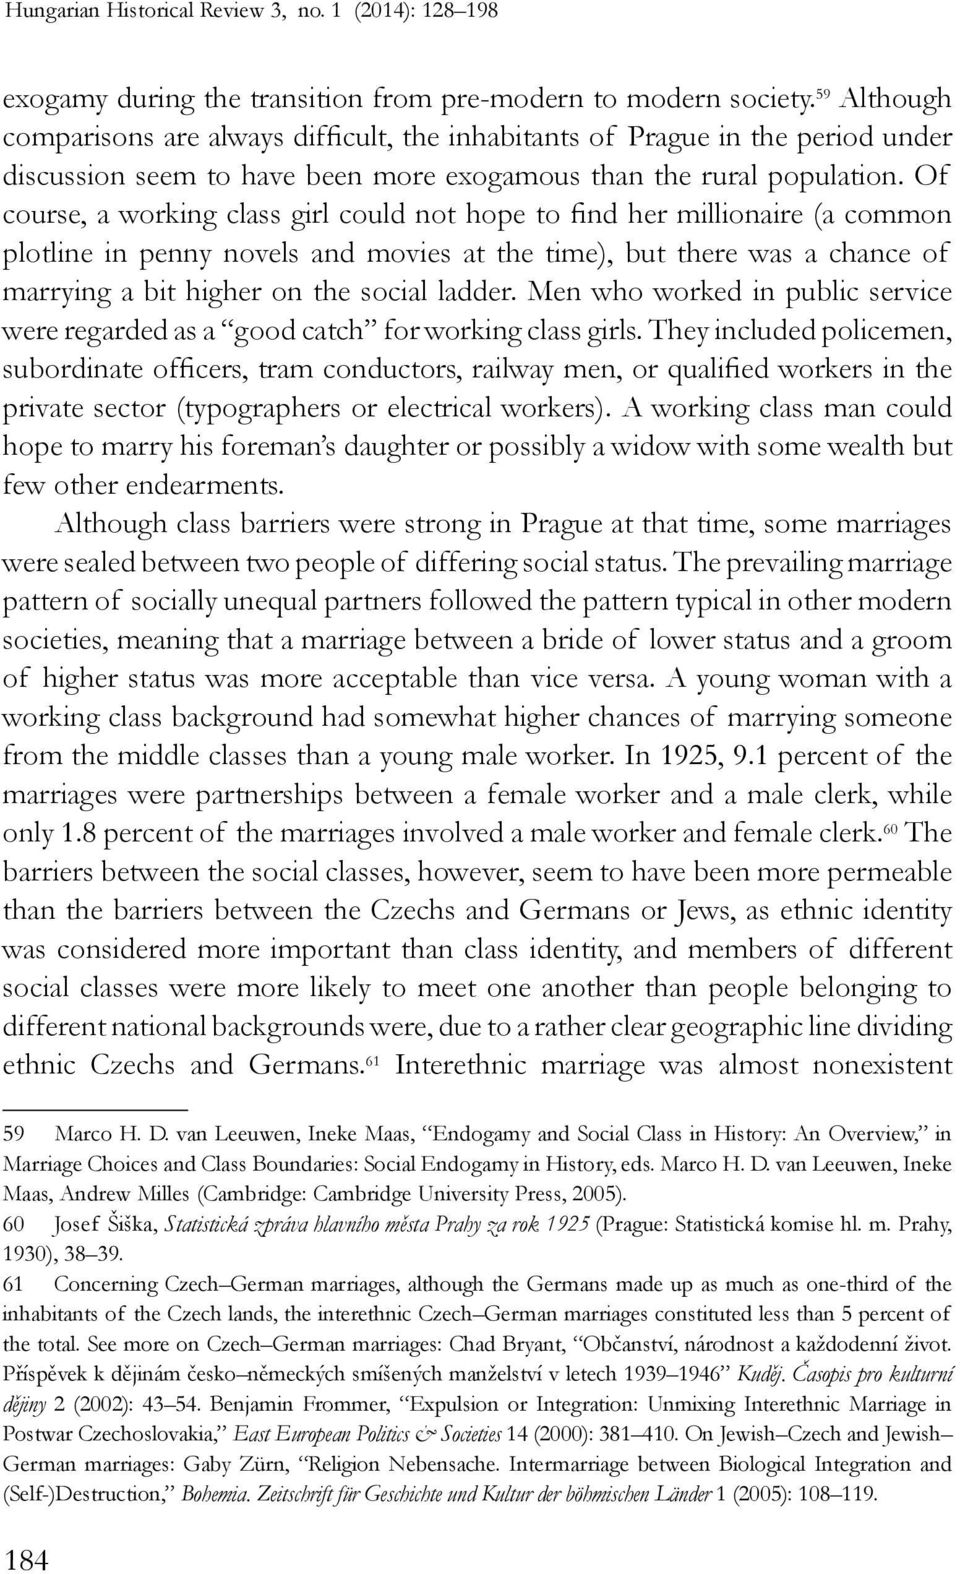 Of course, a working class girl could not hope to find her millionaire (a common plotline in penny novels and movies at the time), but there was a chance of marrying a bit higher on the social ladder.